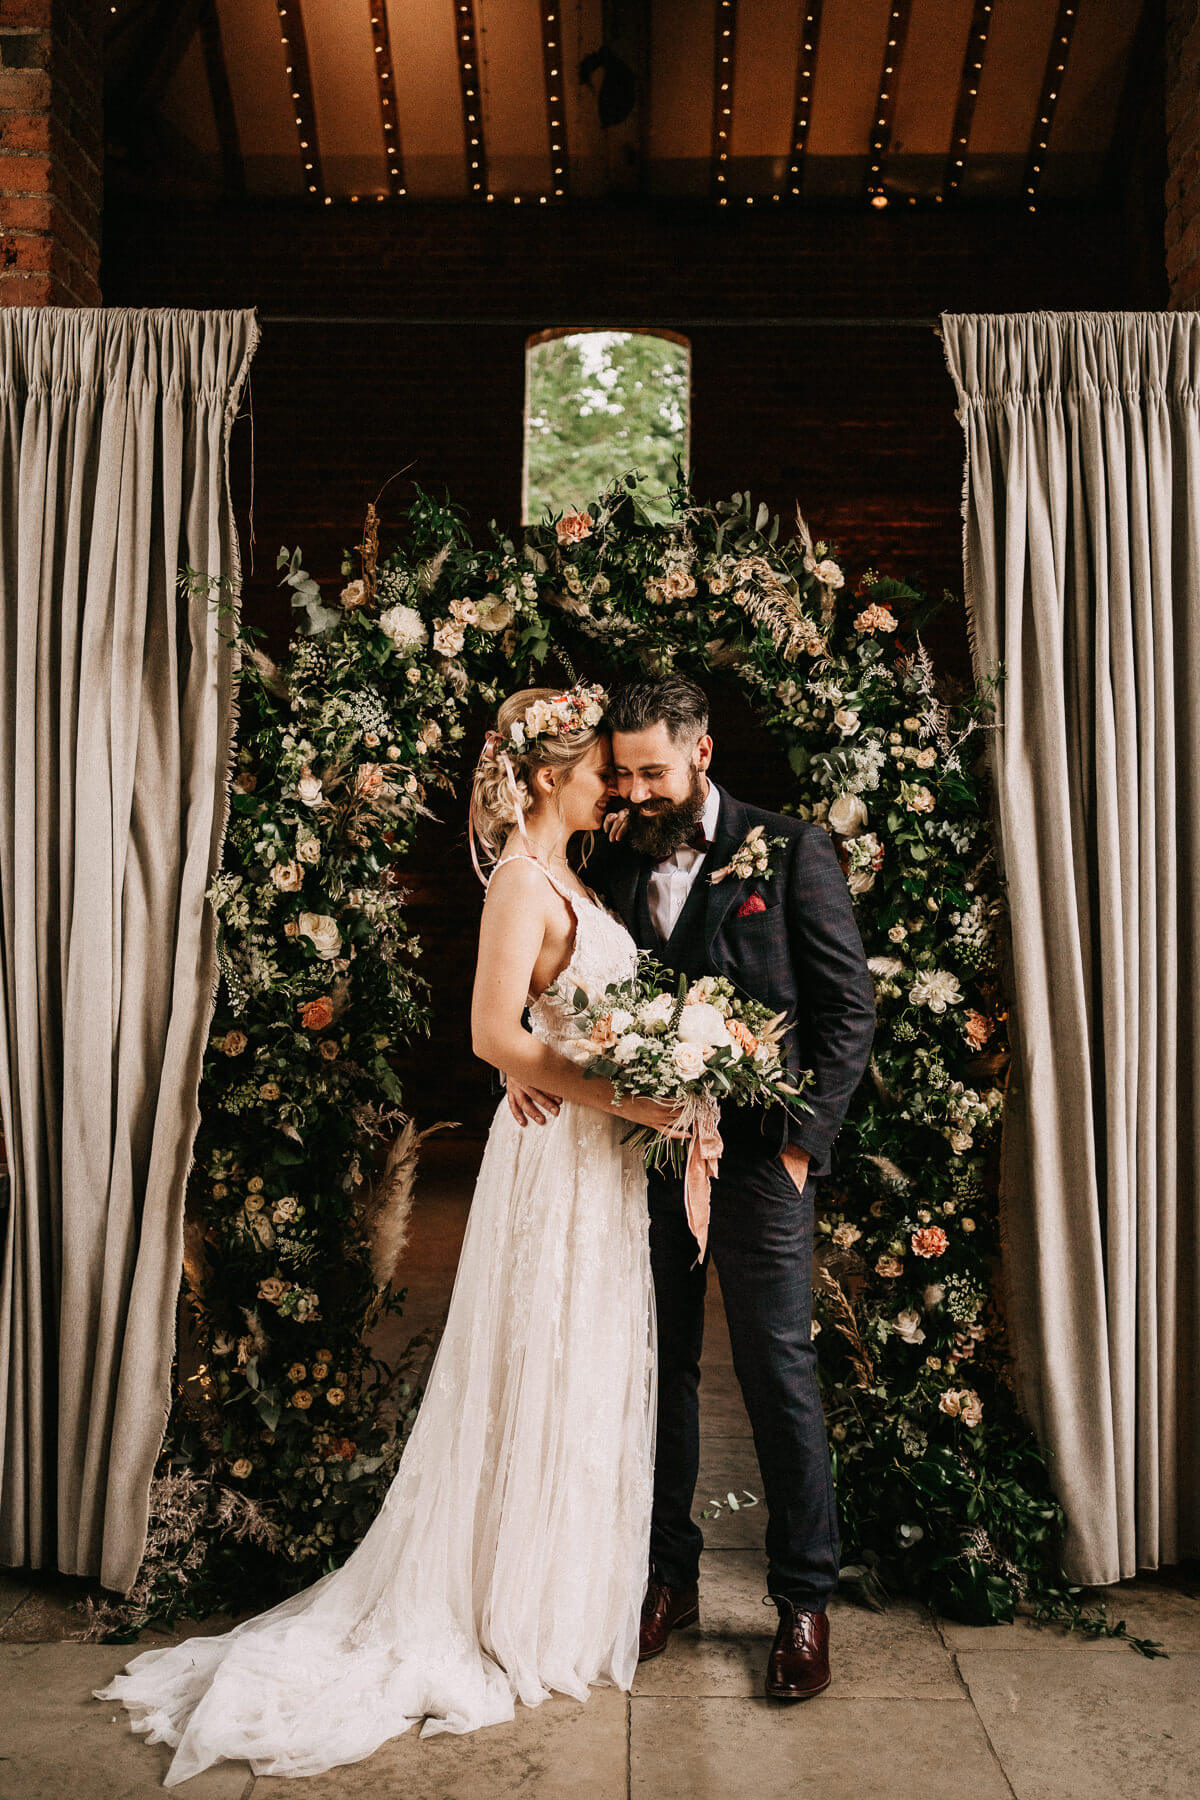 Bride and groom portrait with their flower arch